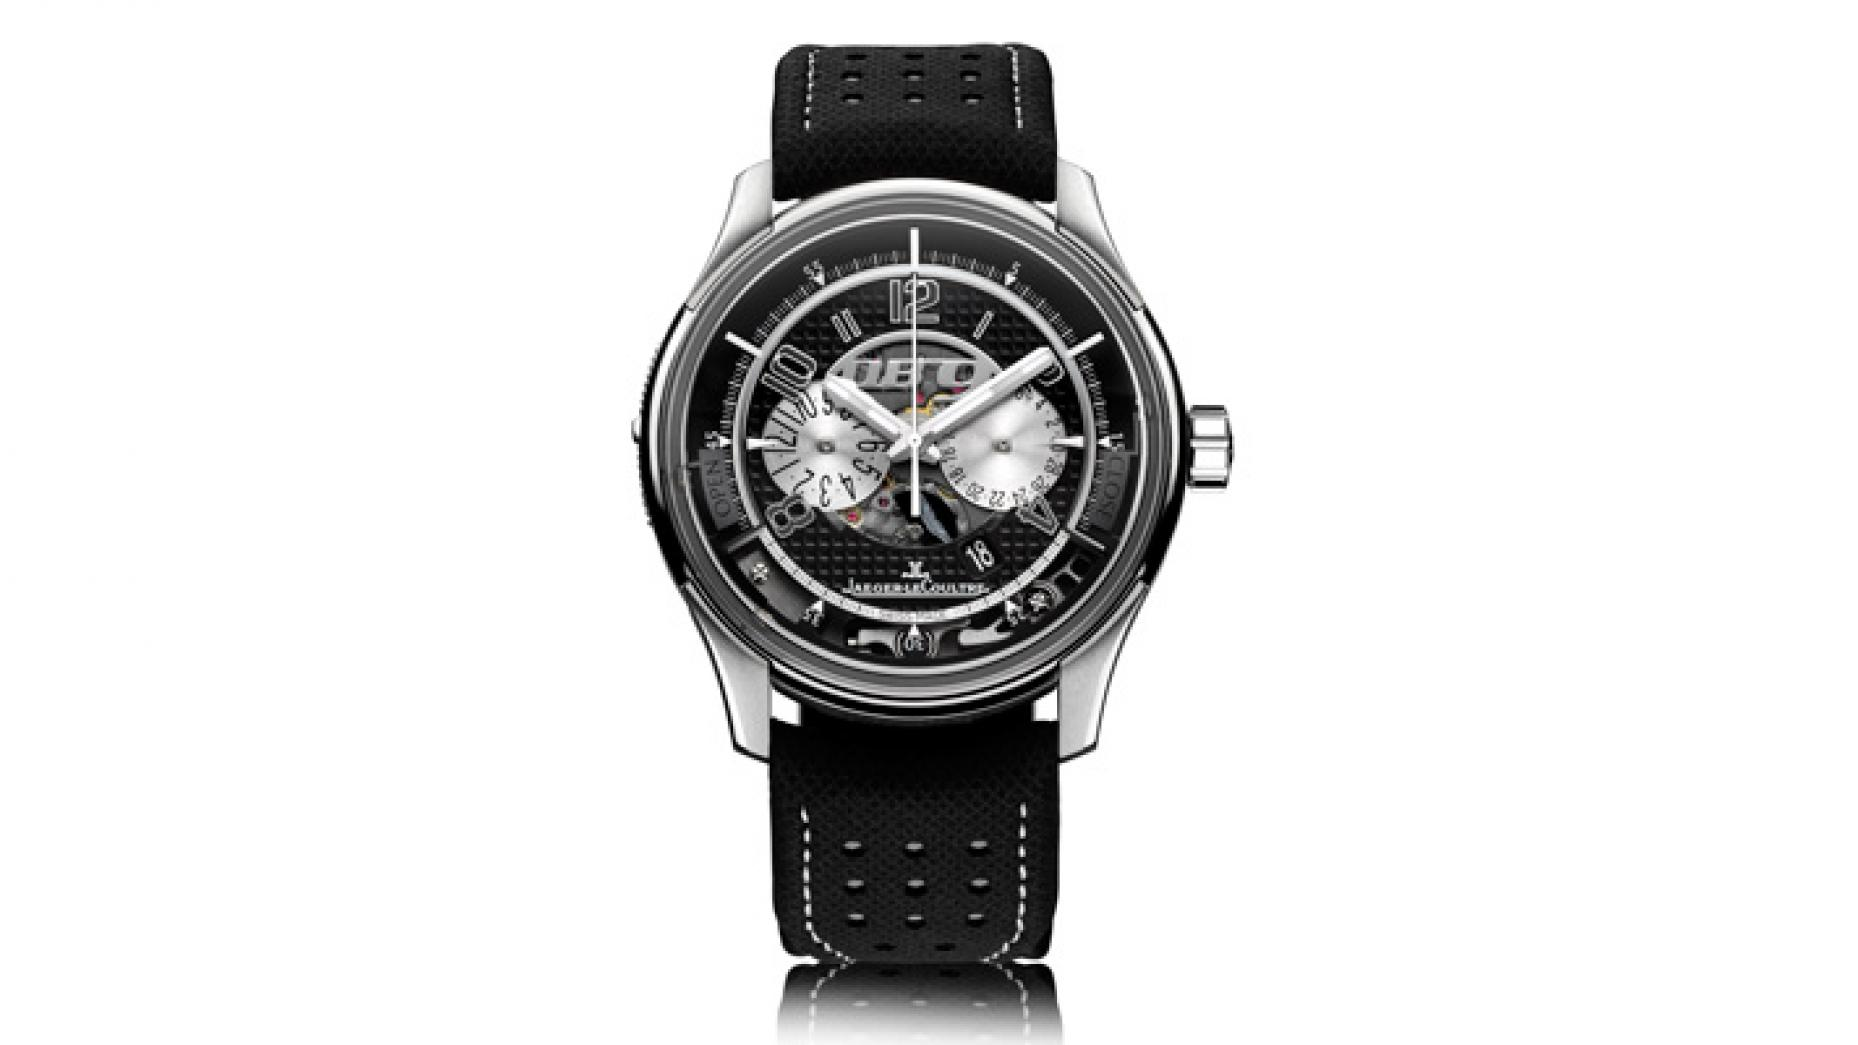 Aston Martin Jaeger LeCoultre Watch Car key